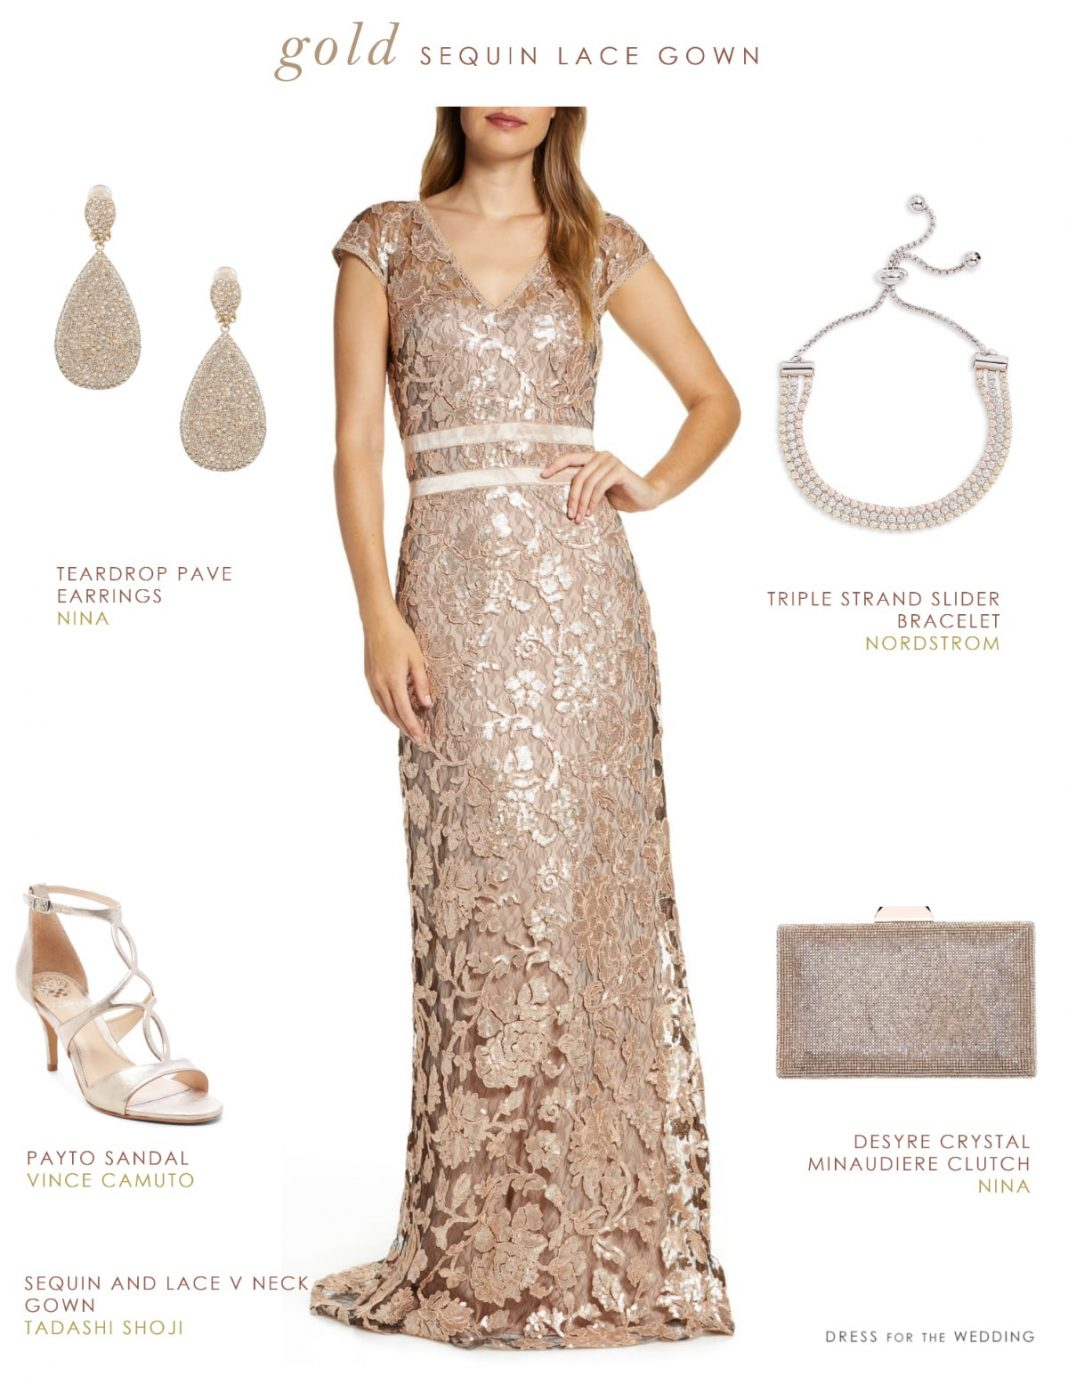 Gpld lace gown for a wedding with accessories